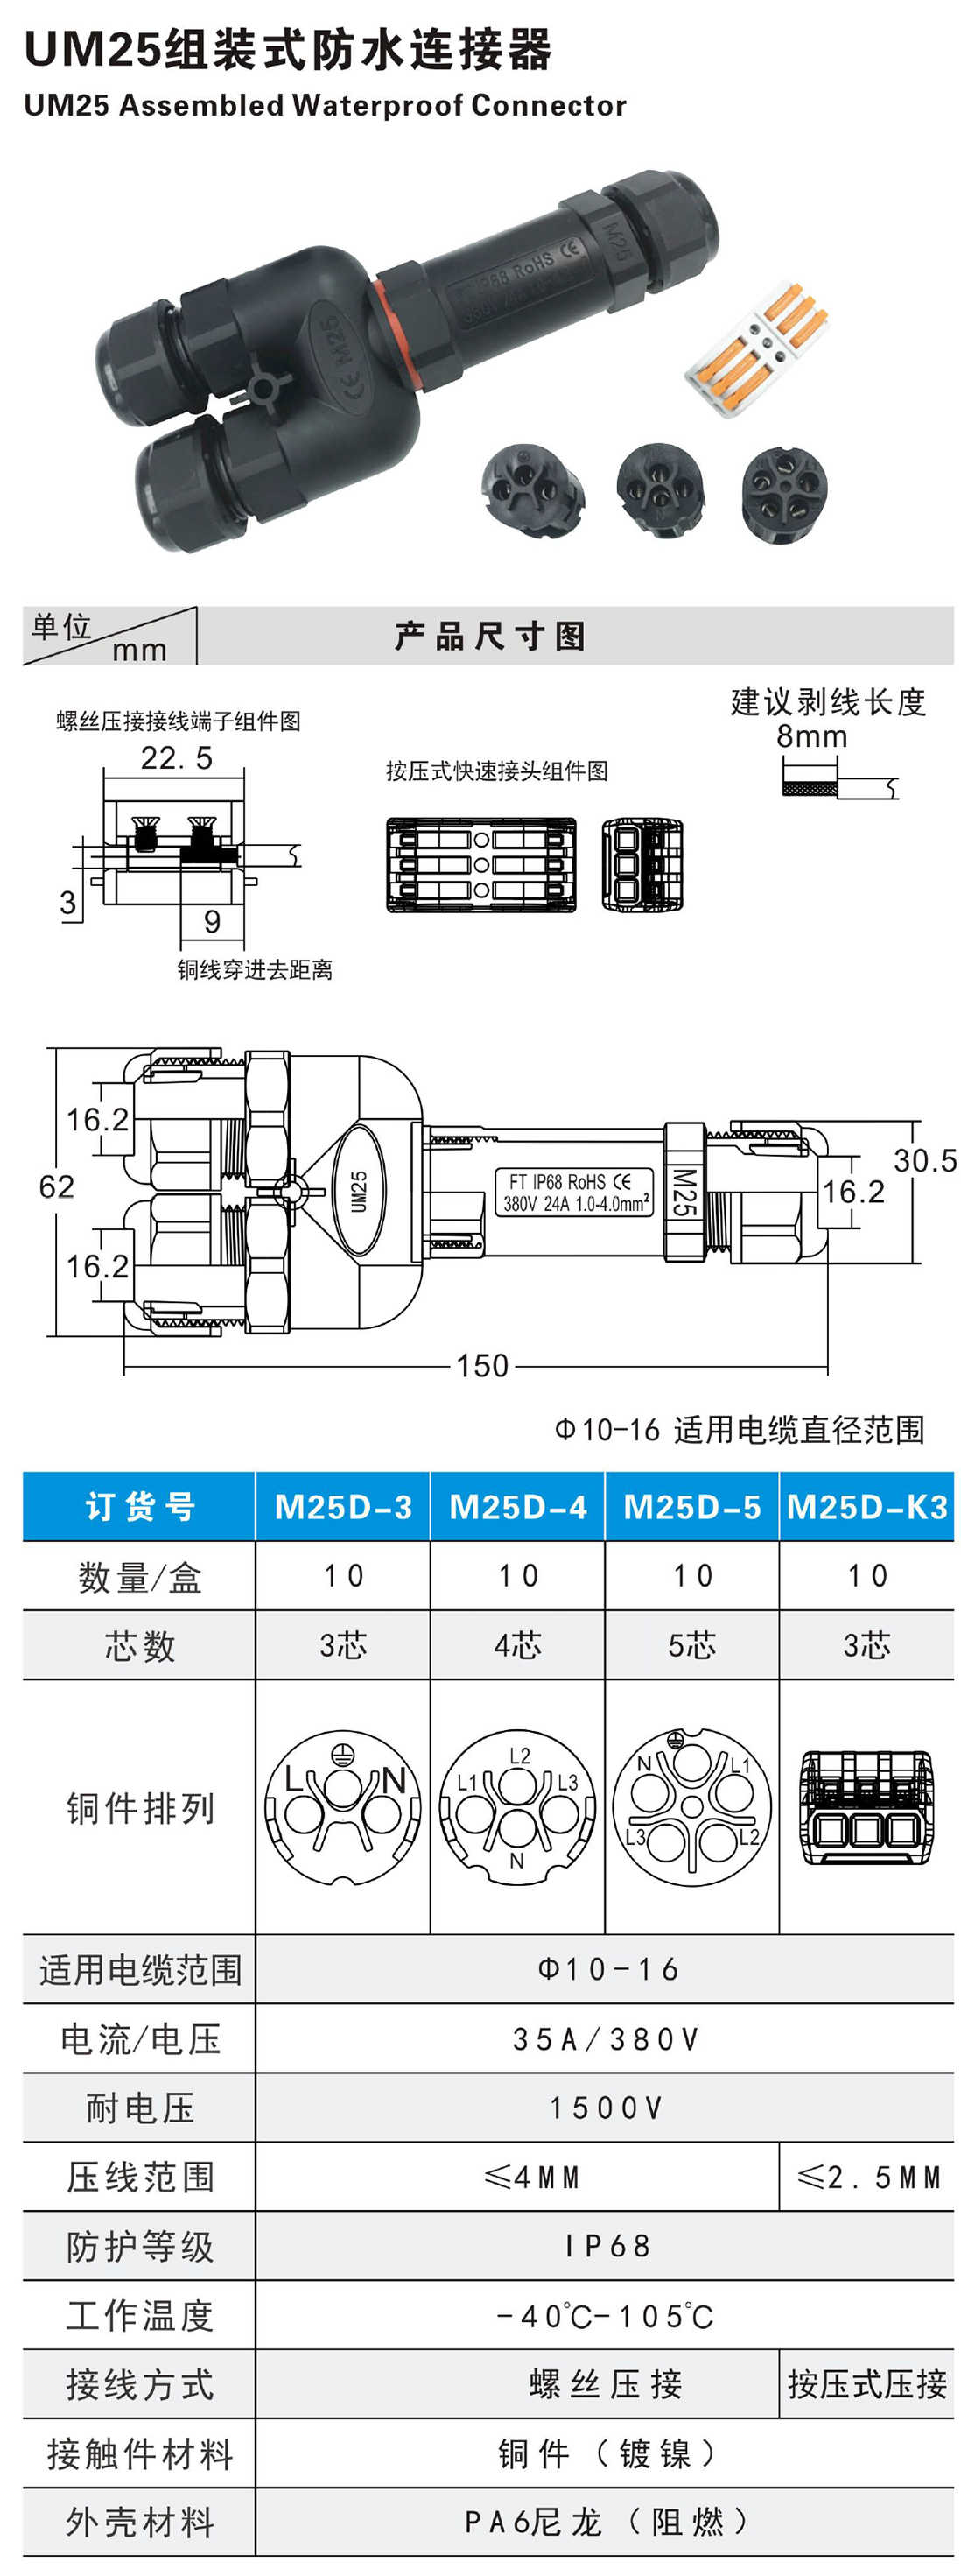 UM25D Assembled Waterproof Connector Parameters